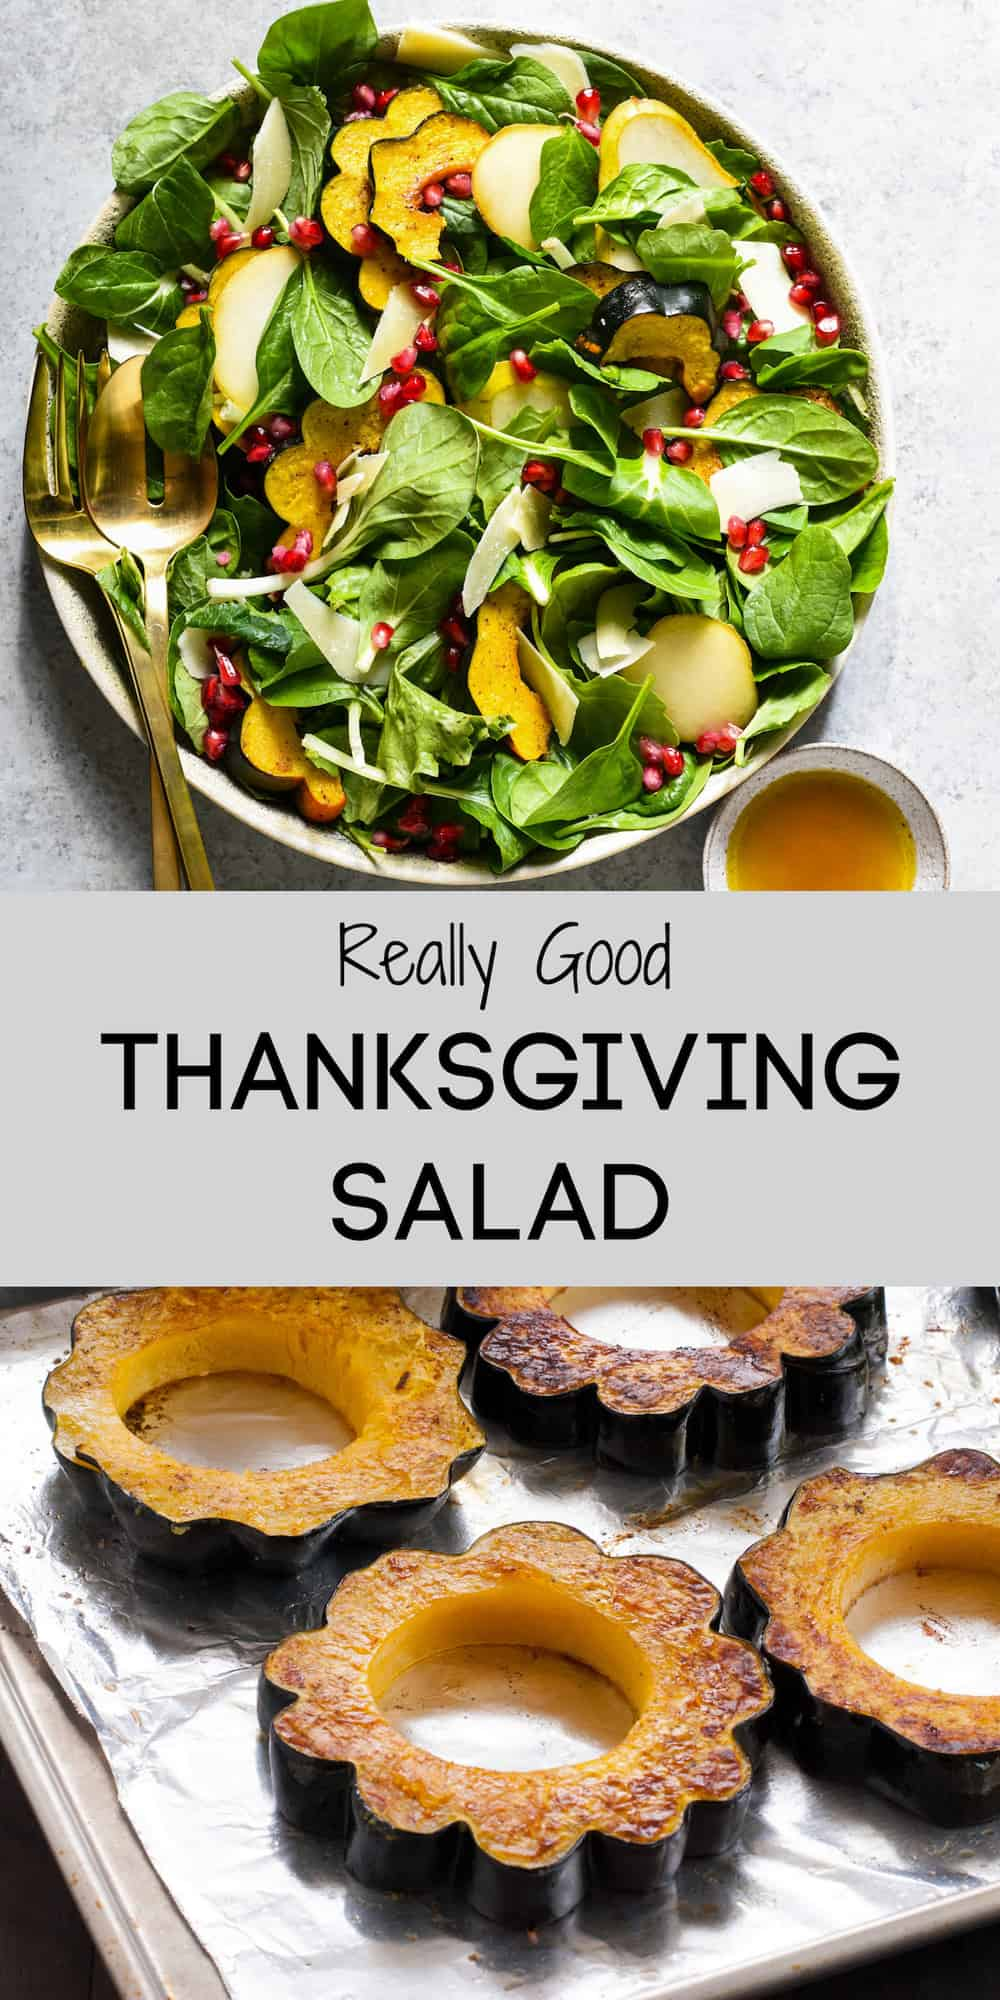 Collage of images of Thanksgiving salad and roasted acorn squash with overlay: Really Good THANKSGIVING SALAD